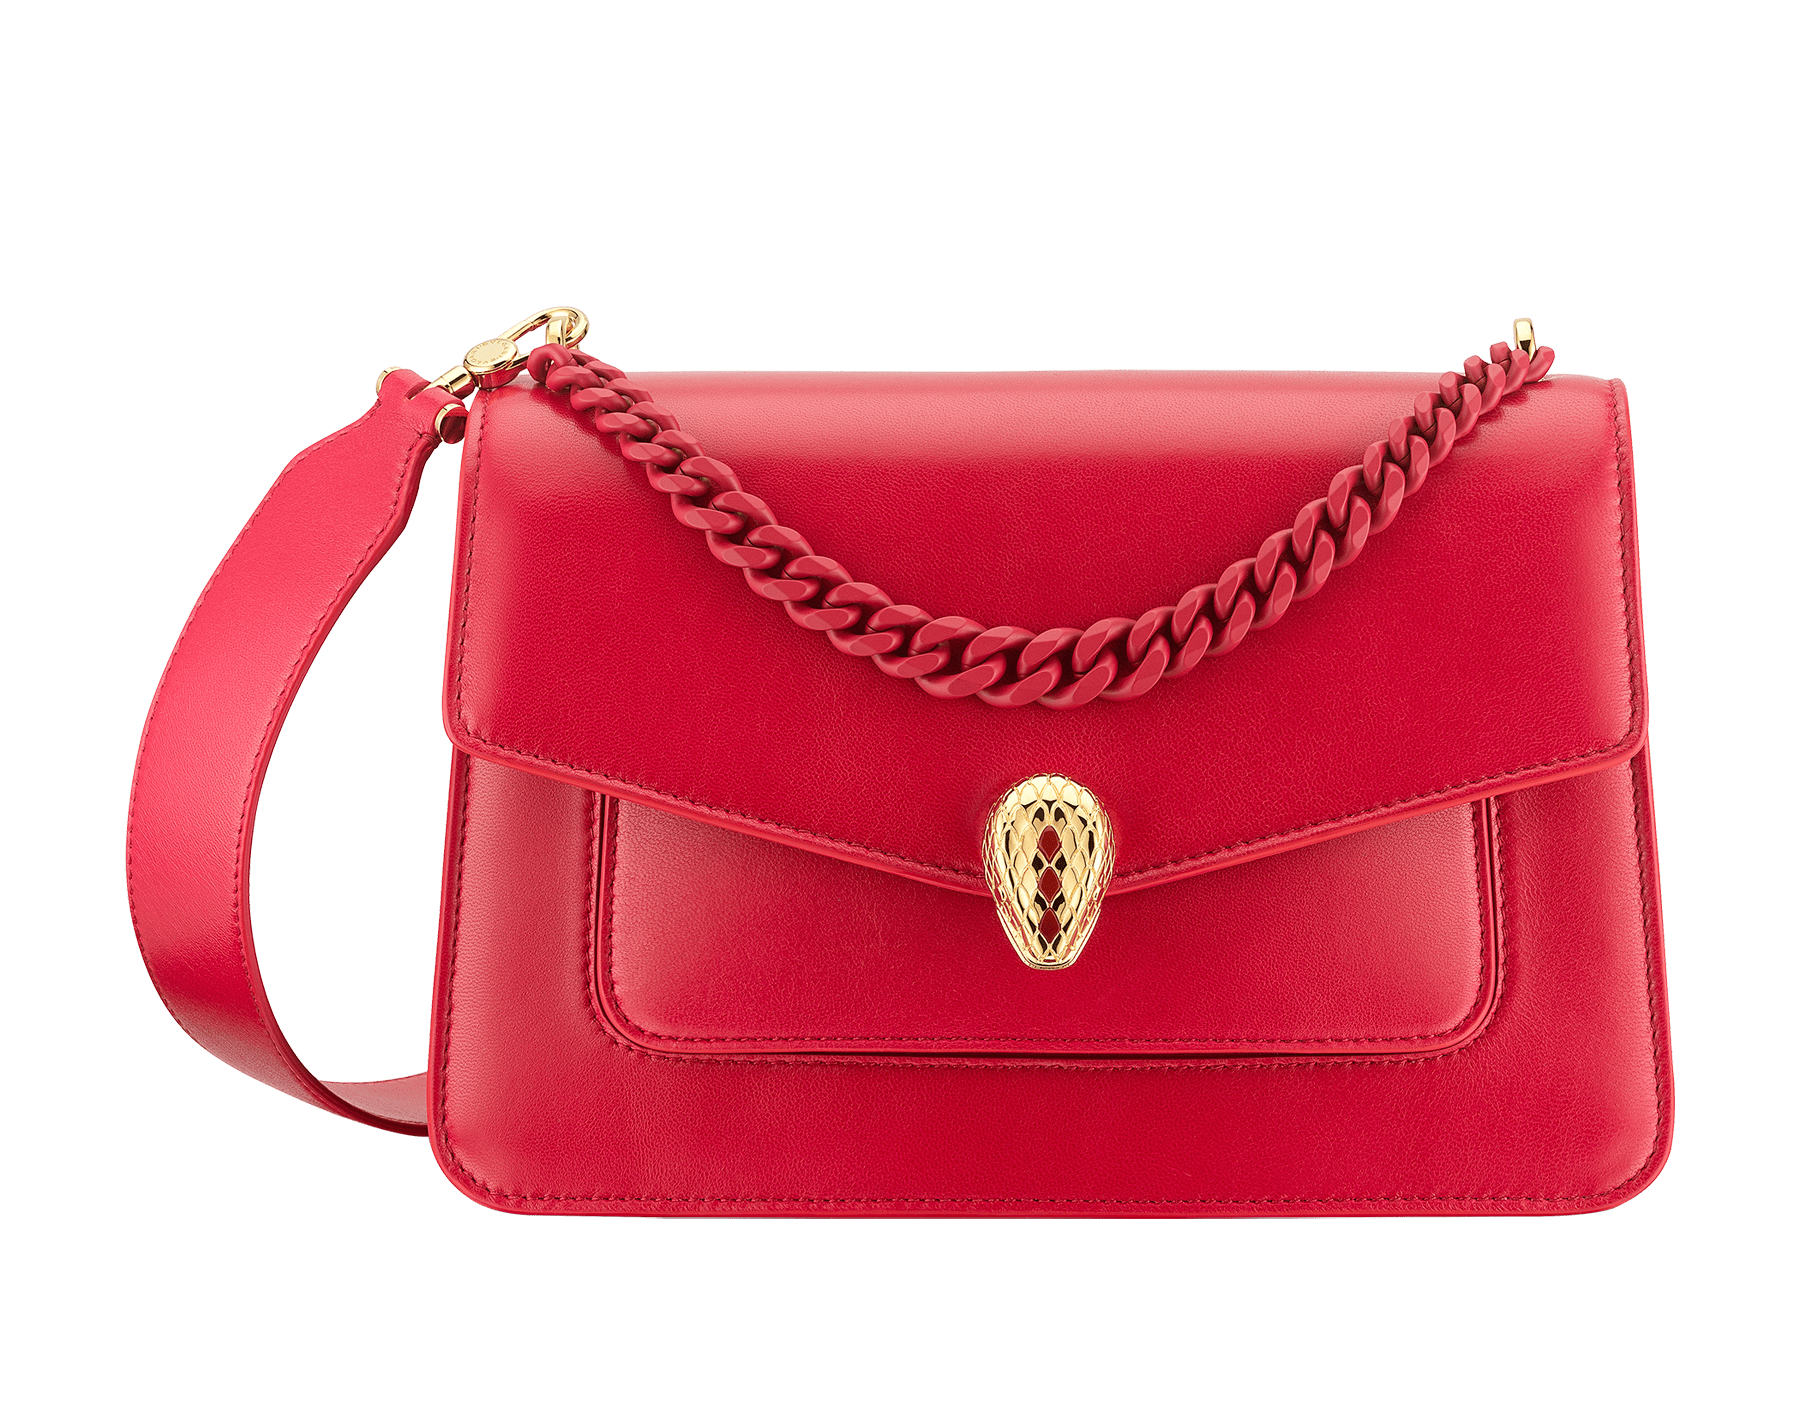 """Serpenti Forever"" maxi chain crossbody bag in Amaranth Garnet red nappa leather, with Pink Spinel fuchsia nappa leather inner lining. New Serpenti head closure in gold-plated brass, finished with small red carnelian scales in the middle and red enamel eyes. 1138-MCN image 1"